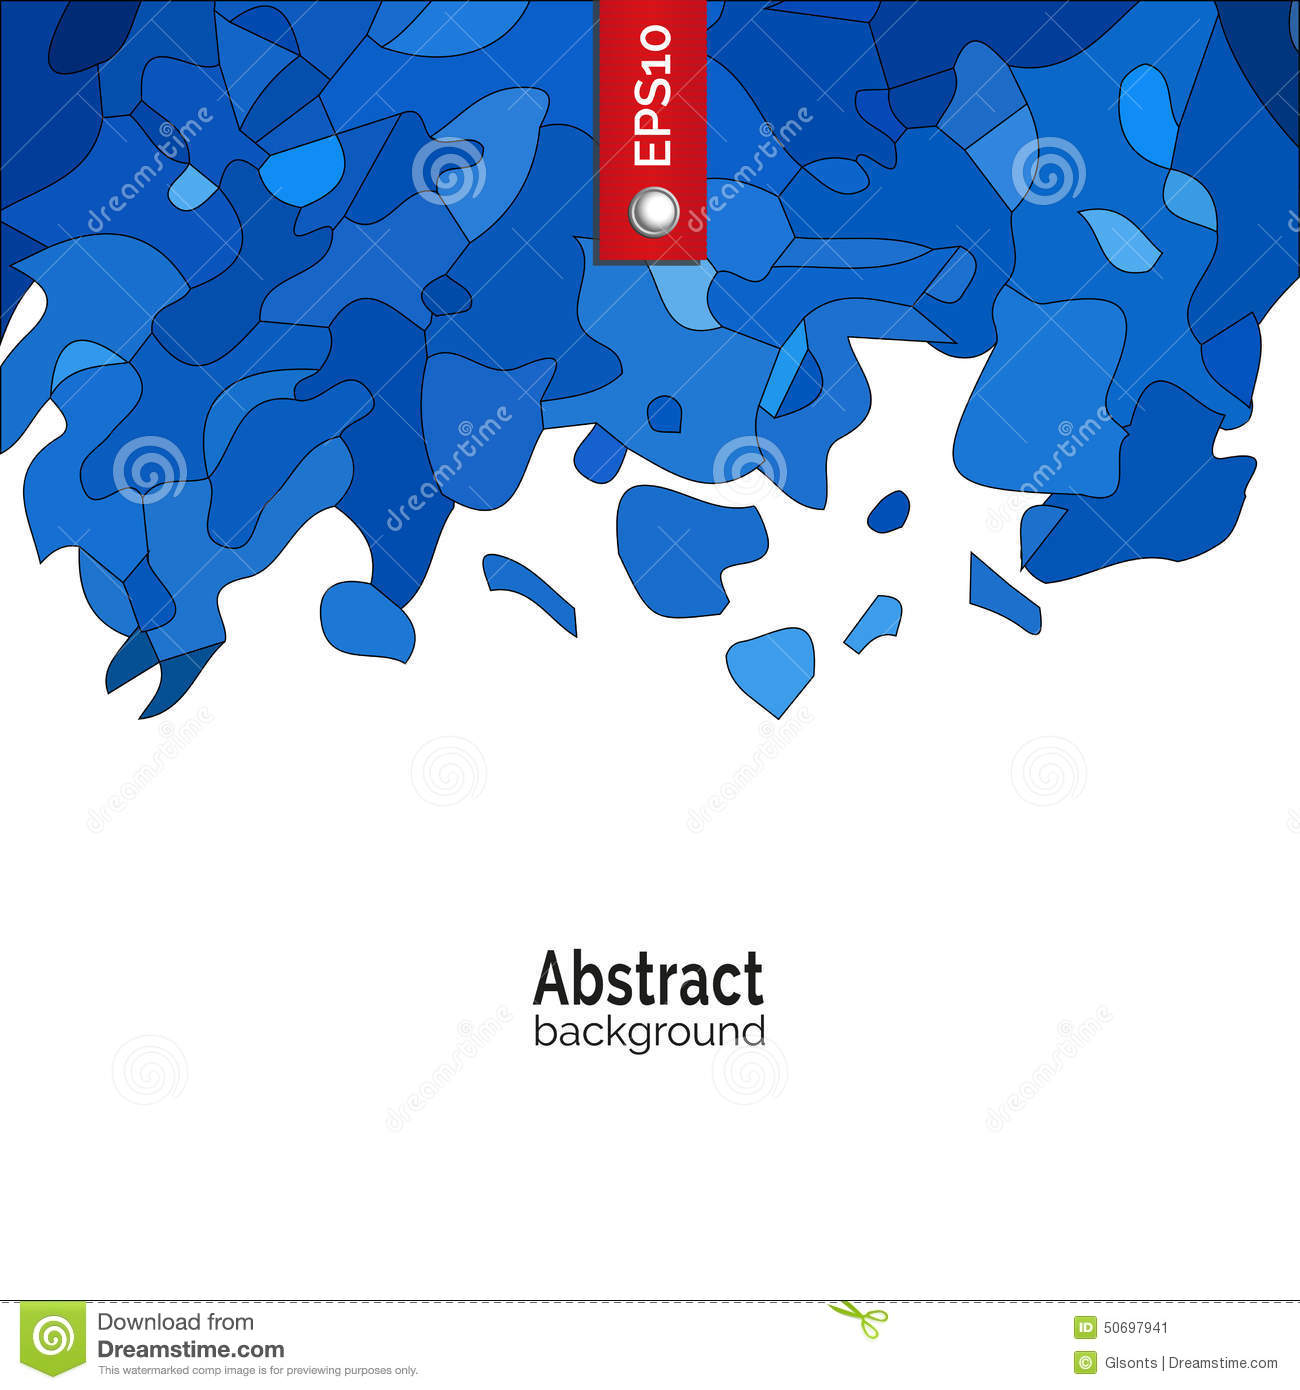 Template For Corporate Identity, Advertising, Poster, Event In Blue Color.  Advertising Poster Templates